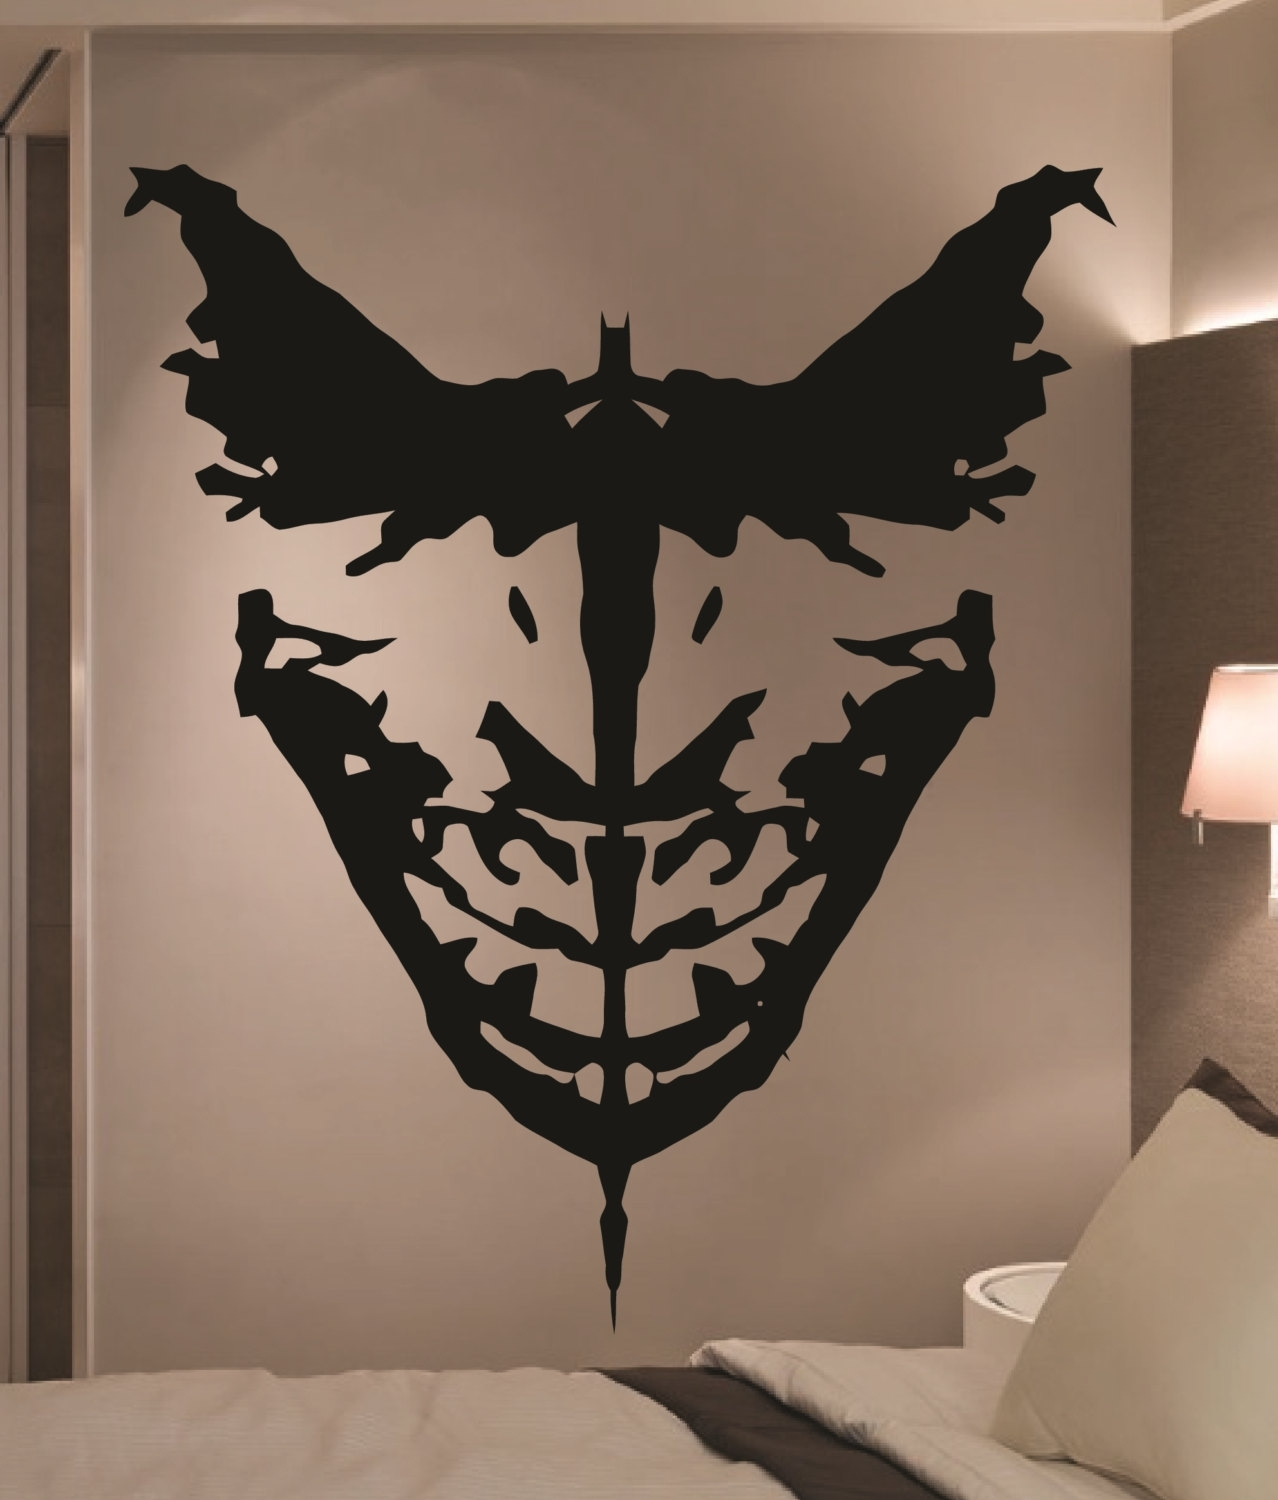 Batman Wall Art – Elitflat Within Most Up To Date Batman Wall Art (View 12 of 20)